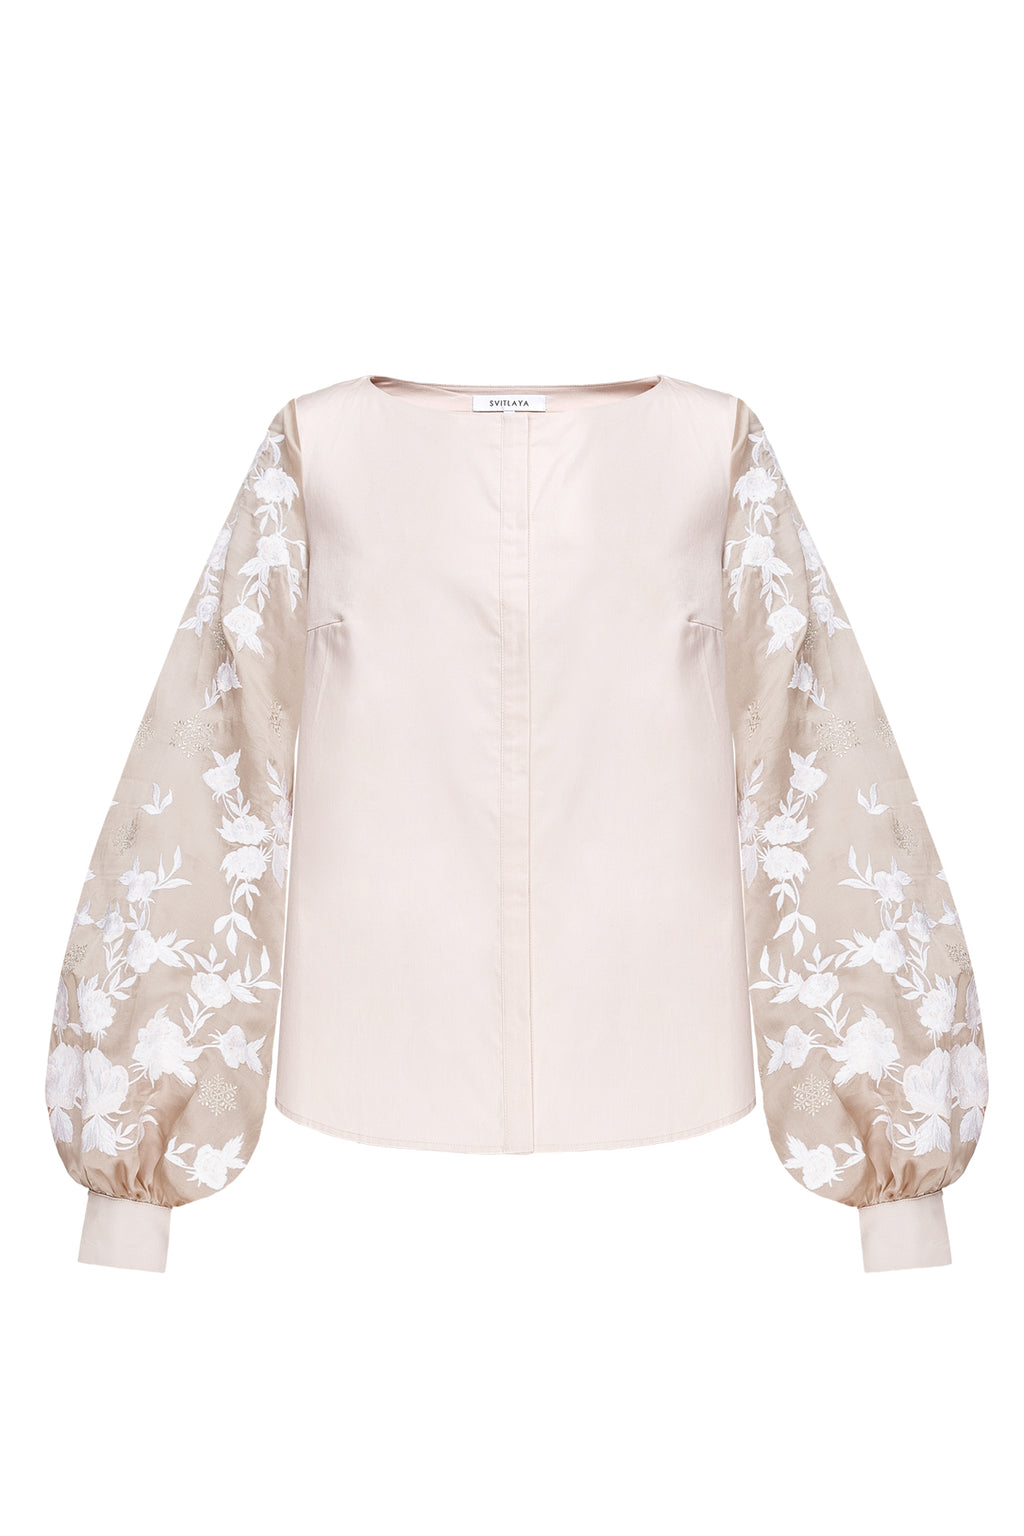 SNOW ROSE blouse in cream cotton